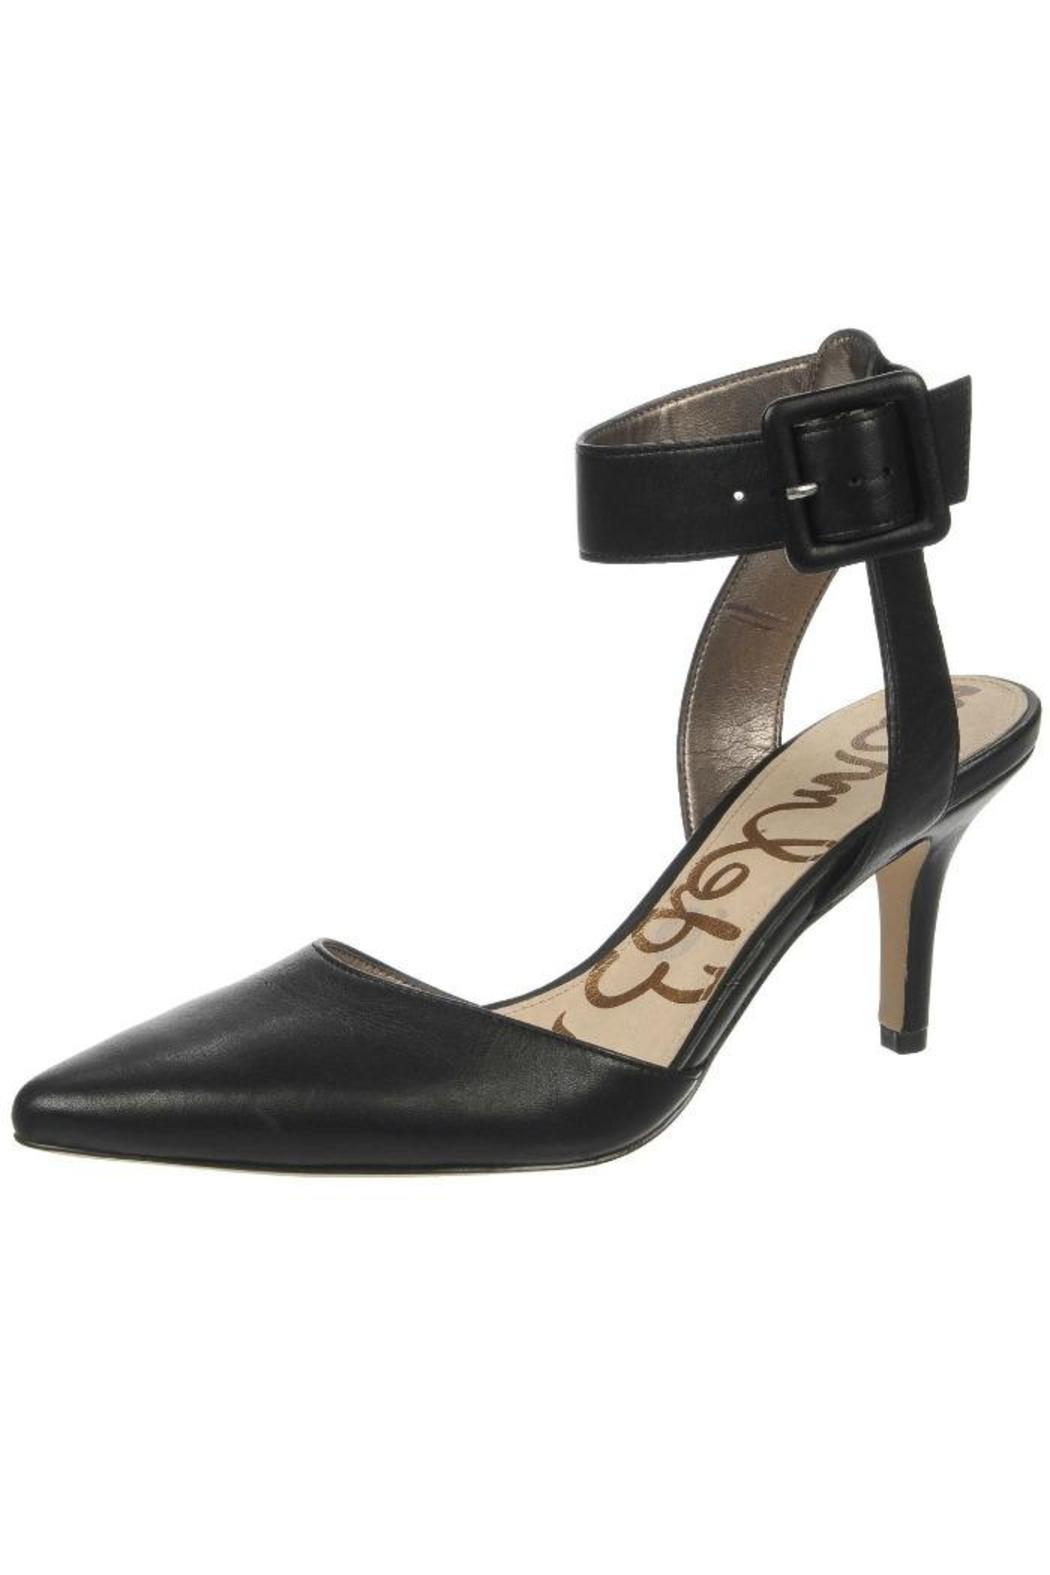 8ccbcf4c5836 Sam Edelman Okala Heel from Philadelphia by Hot Foot Boutique ...